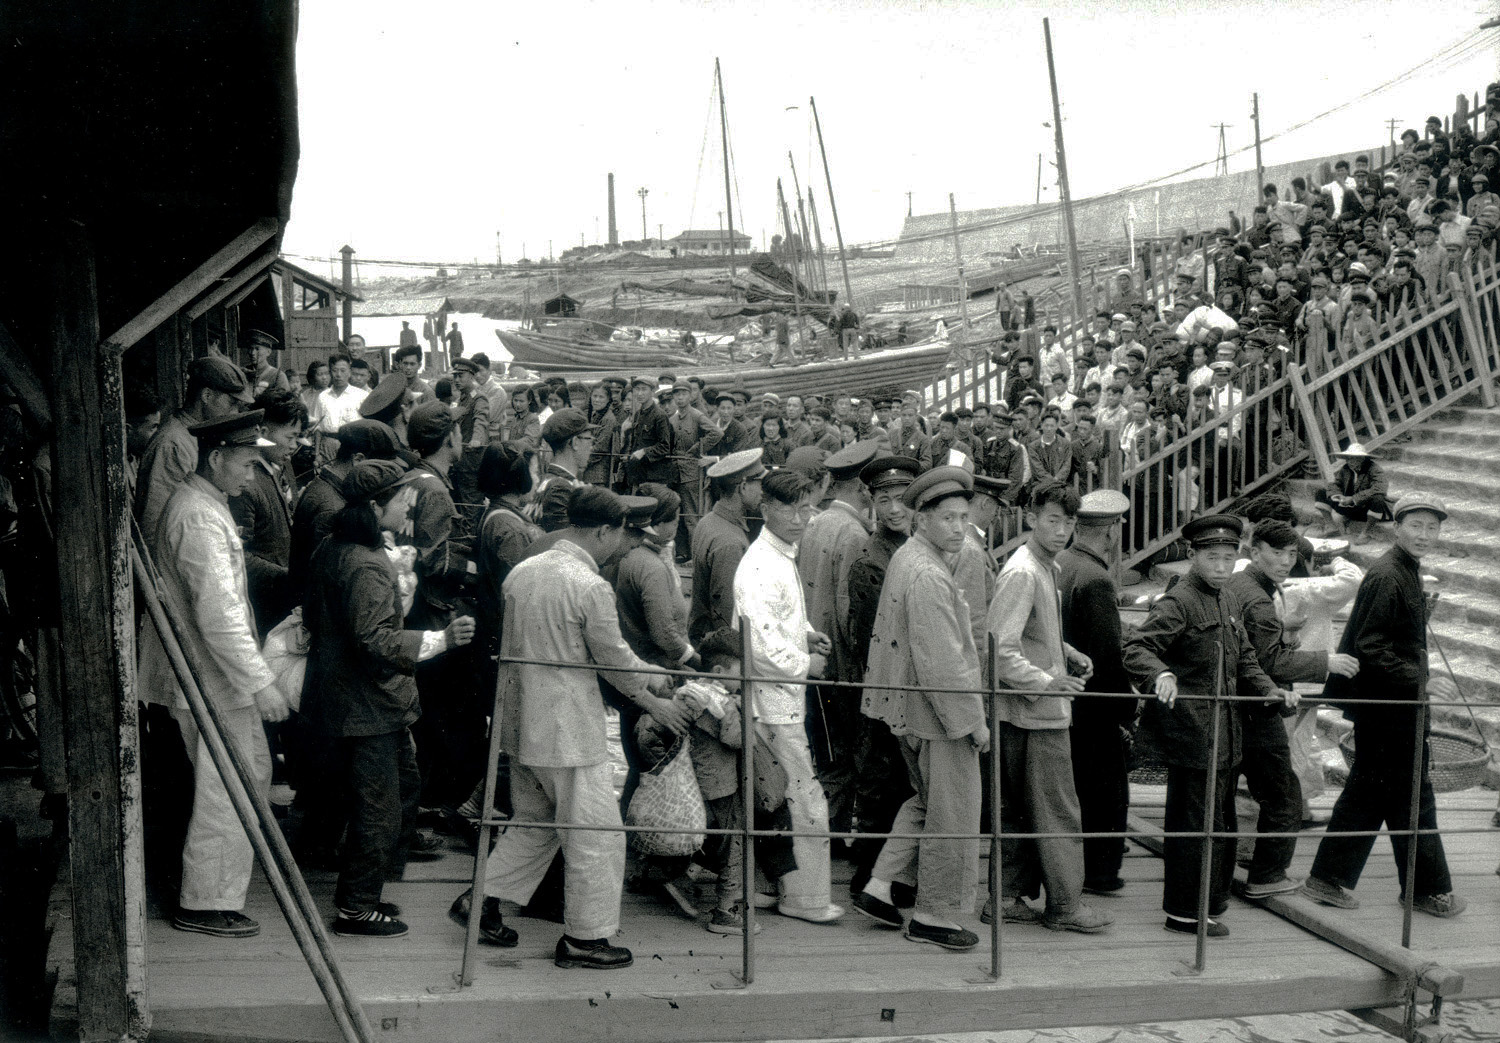 A large crowd embarking and disembarking from a ferry terminal in Hunan Province, China, May 1956. (RDH C05-13a)